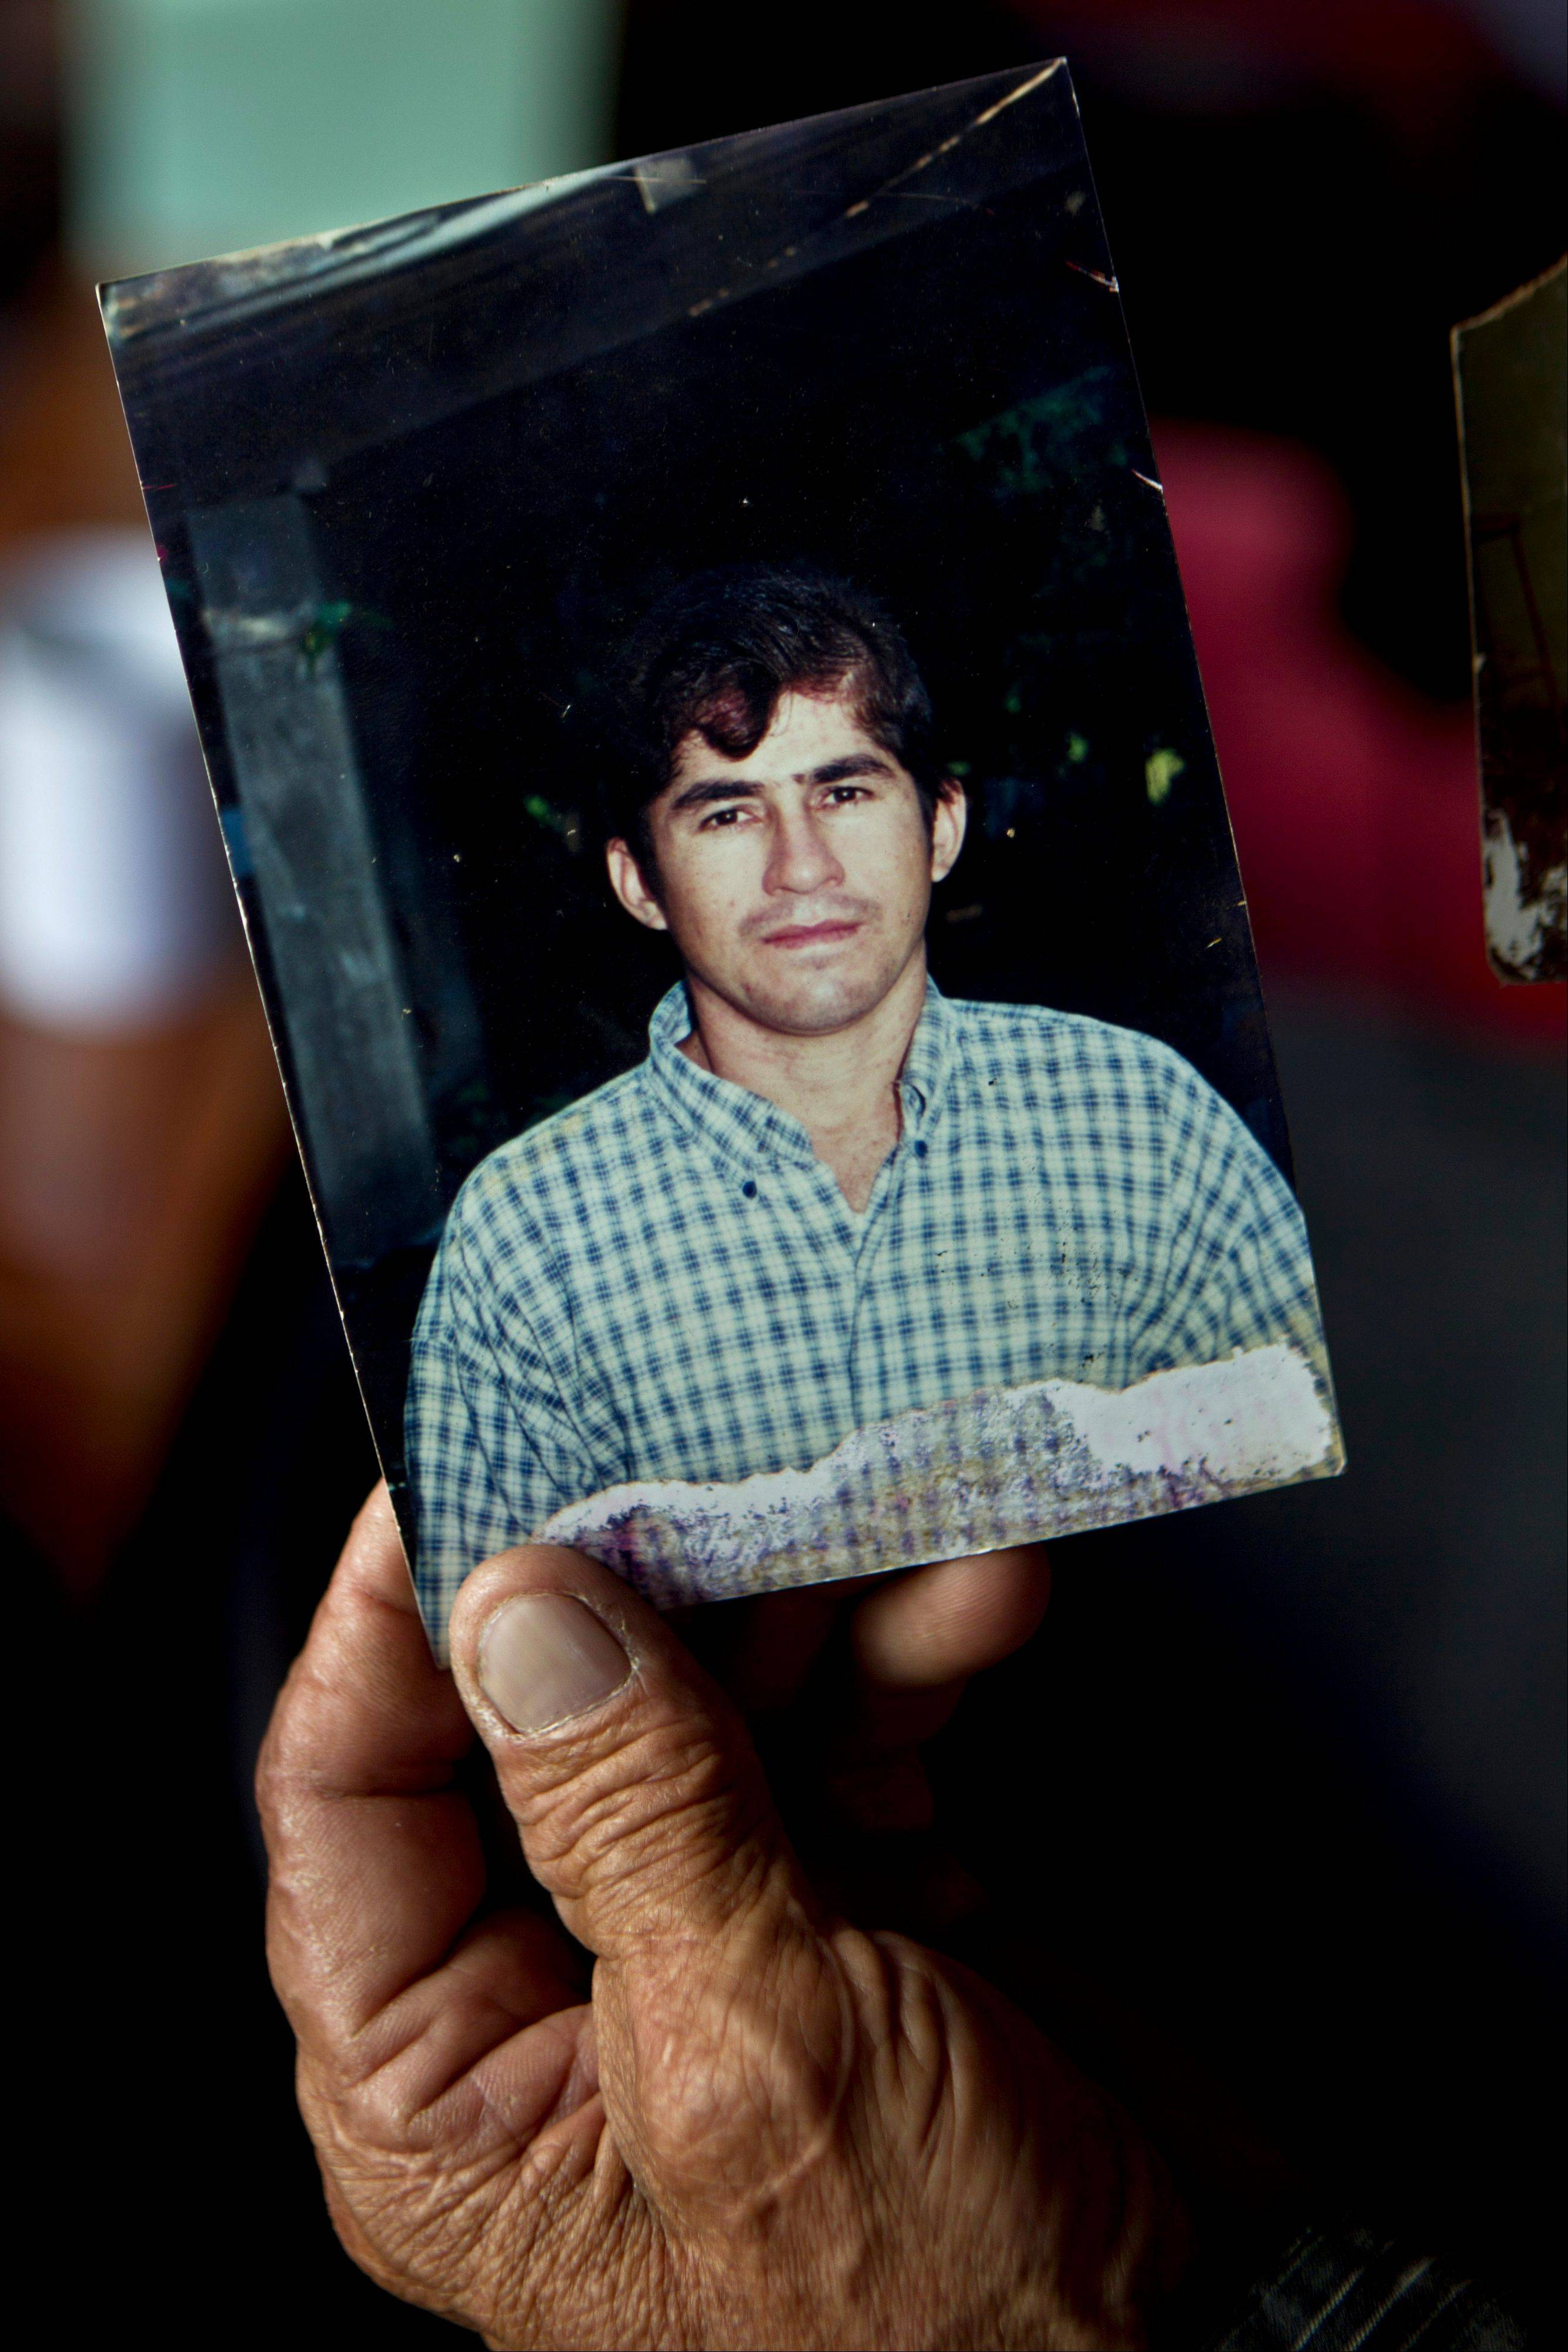 Jose Ricardo Orellana shows a photo of his son, Jose Salvador Alvarenga, when he was in his late twenties during an interview at his home in the village of Garita Palmera, El Salvador, Tuesday. The account of Alvarenga's survival after more than 13 months in an open boat has proven a double miracle for his family, who lost touch with him years ago and thought he was dead. Alvarenga says he left Mexico in December 2012 for a day of shark fishing and ended up on the remote Marshall Islands.